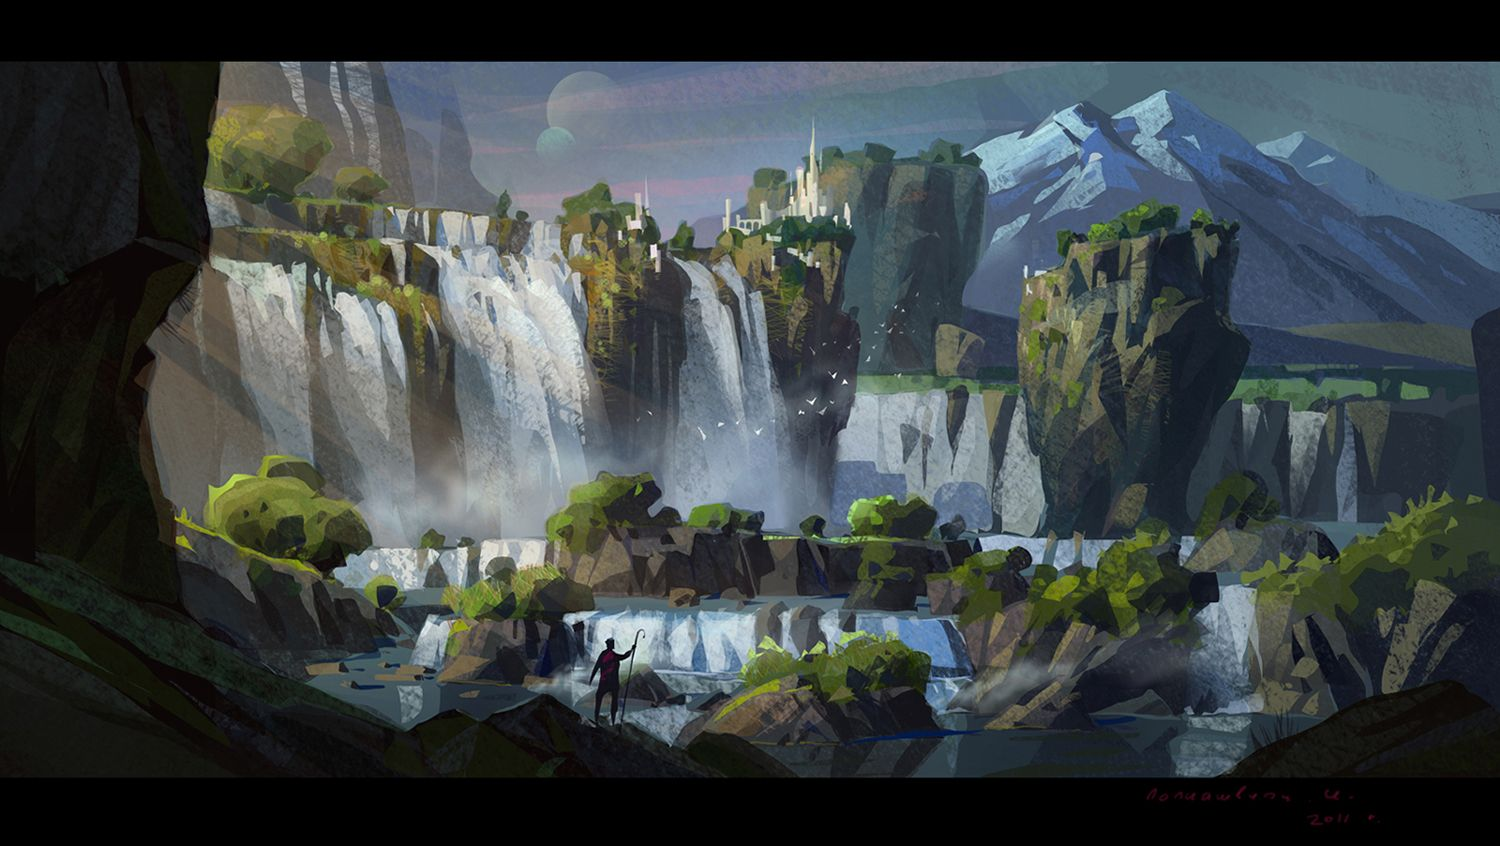 Waterfalls by ivany86 on deviantart via land for Waterfall environment